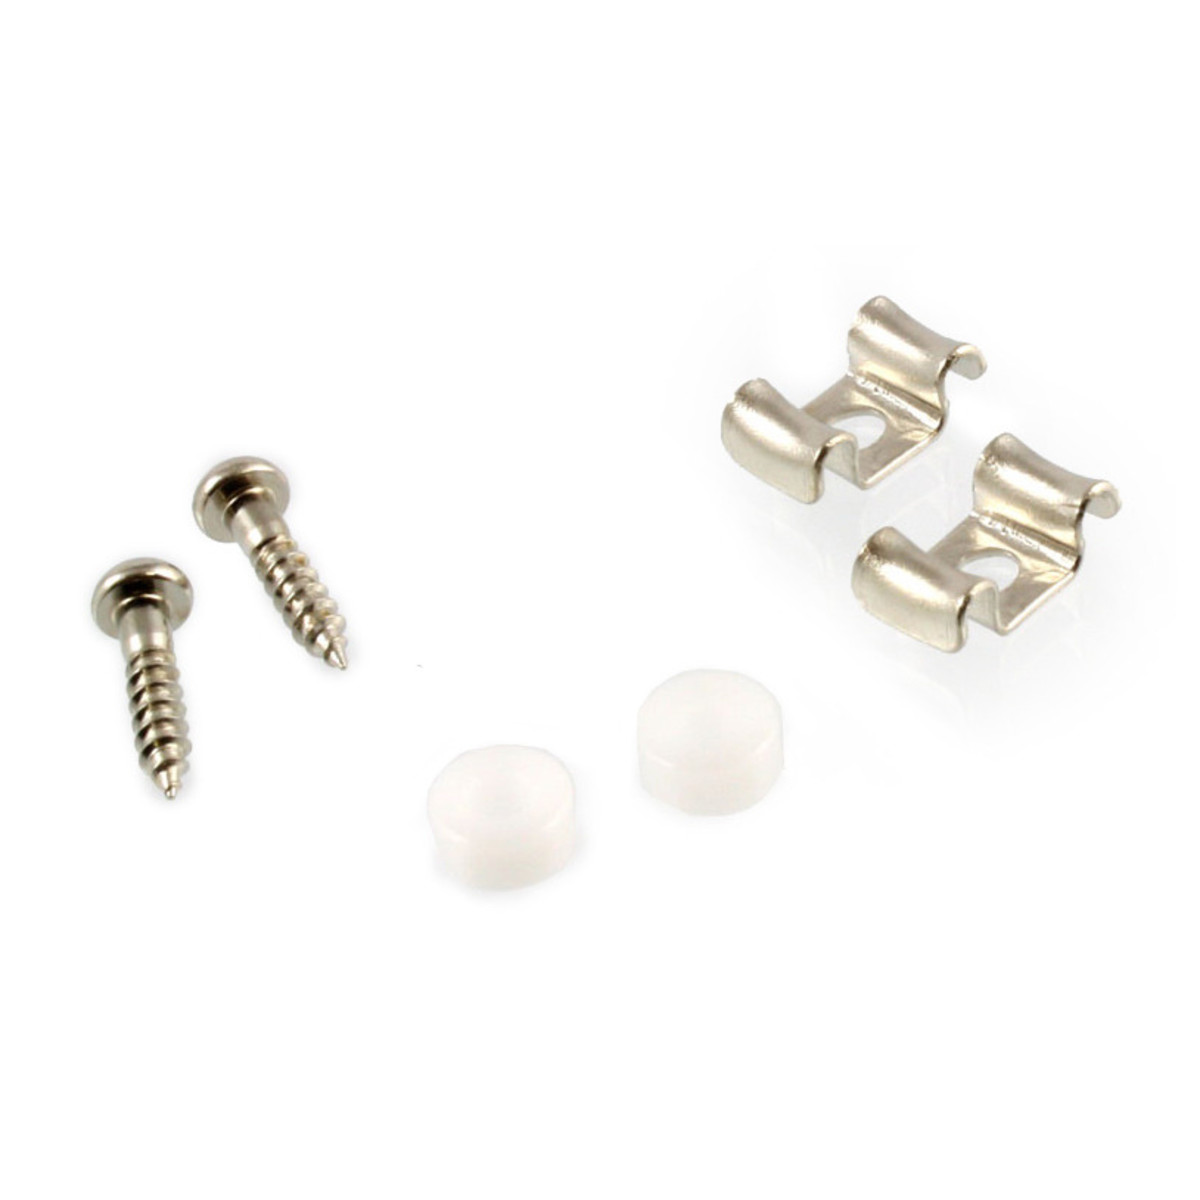 Image of Allparts String Guides For Guitar Nickel